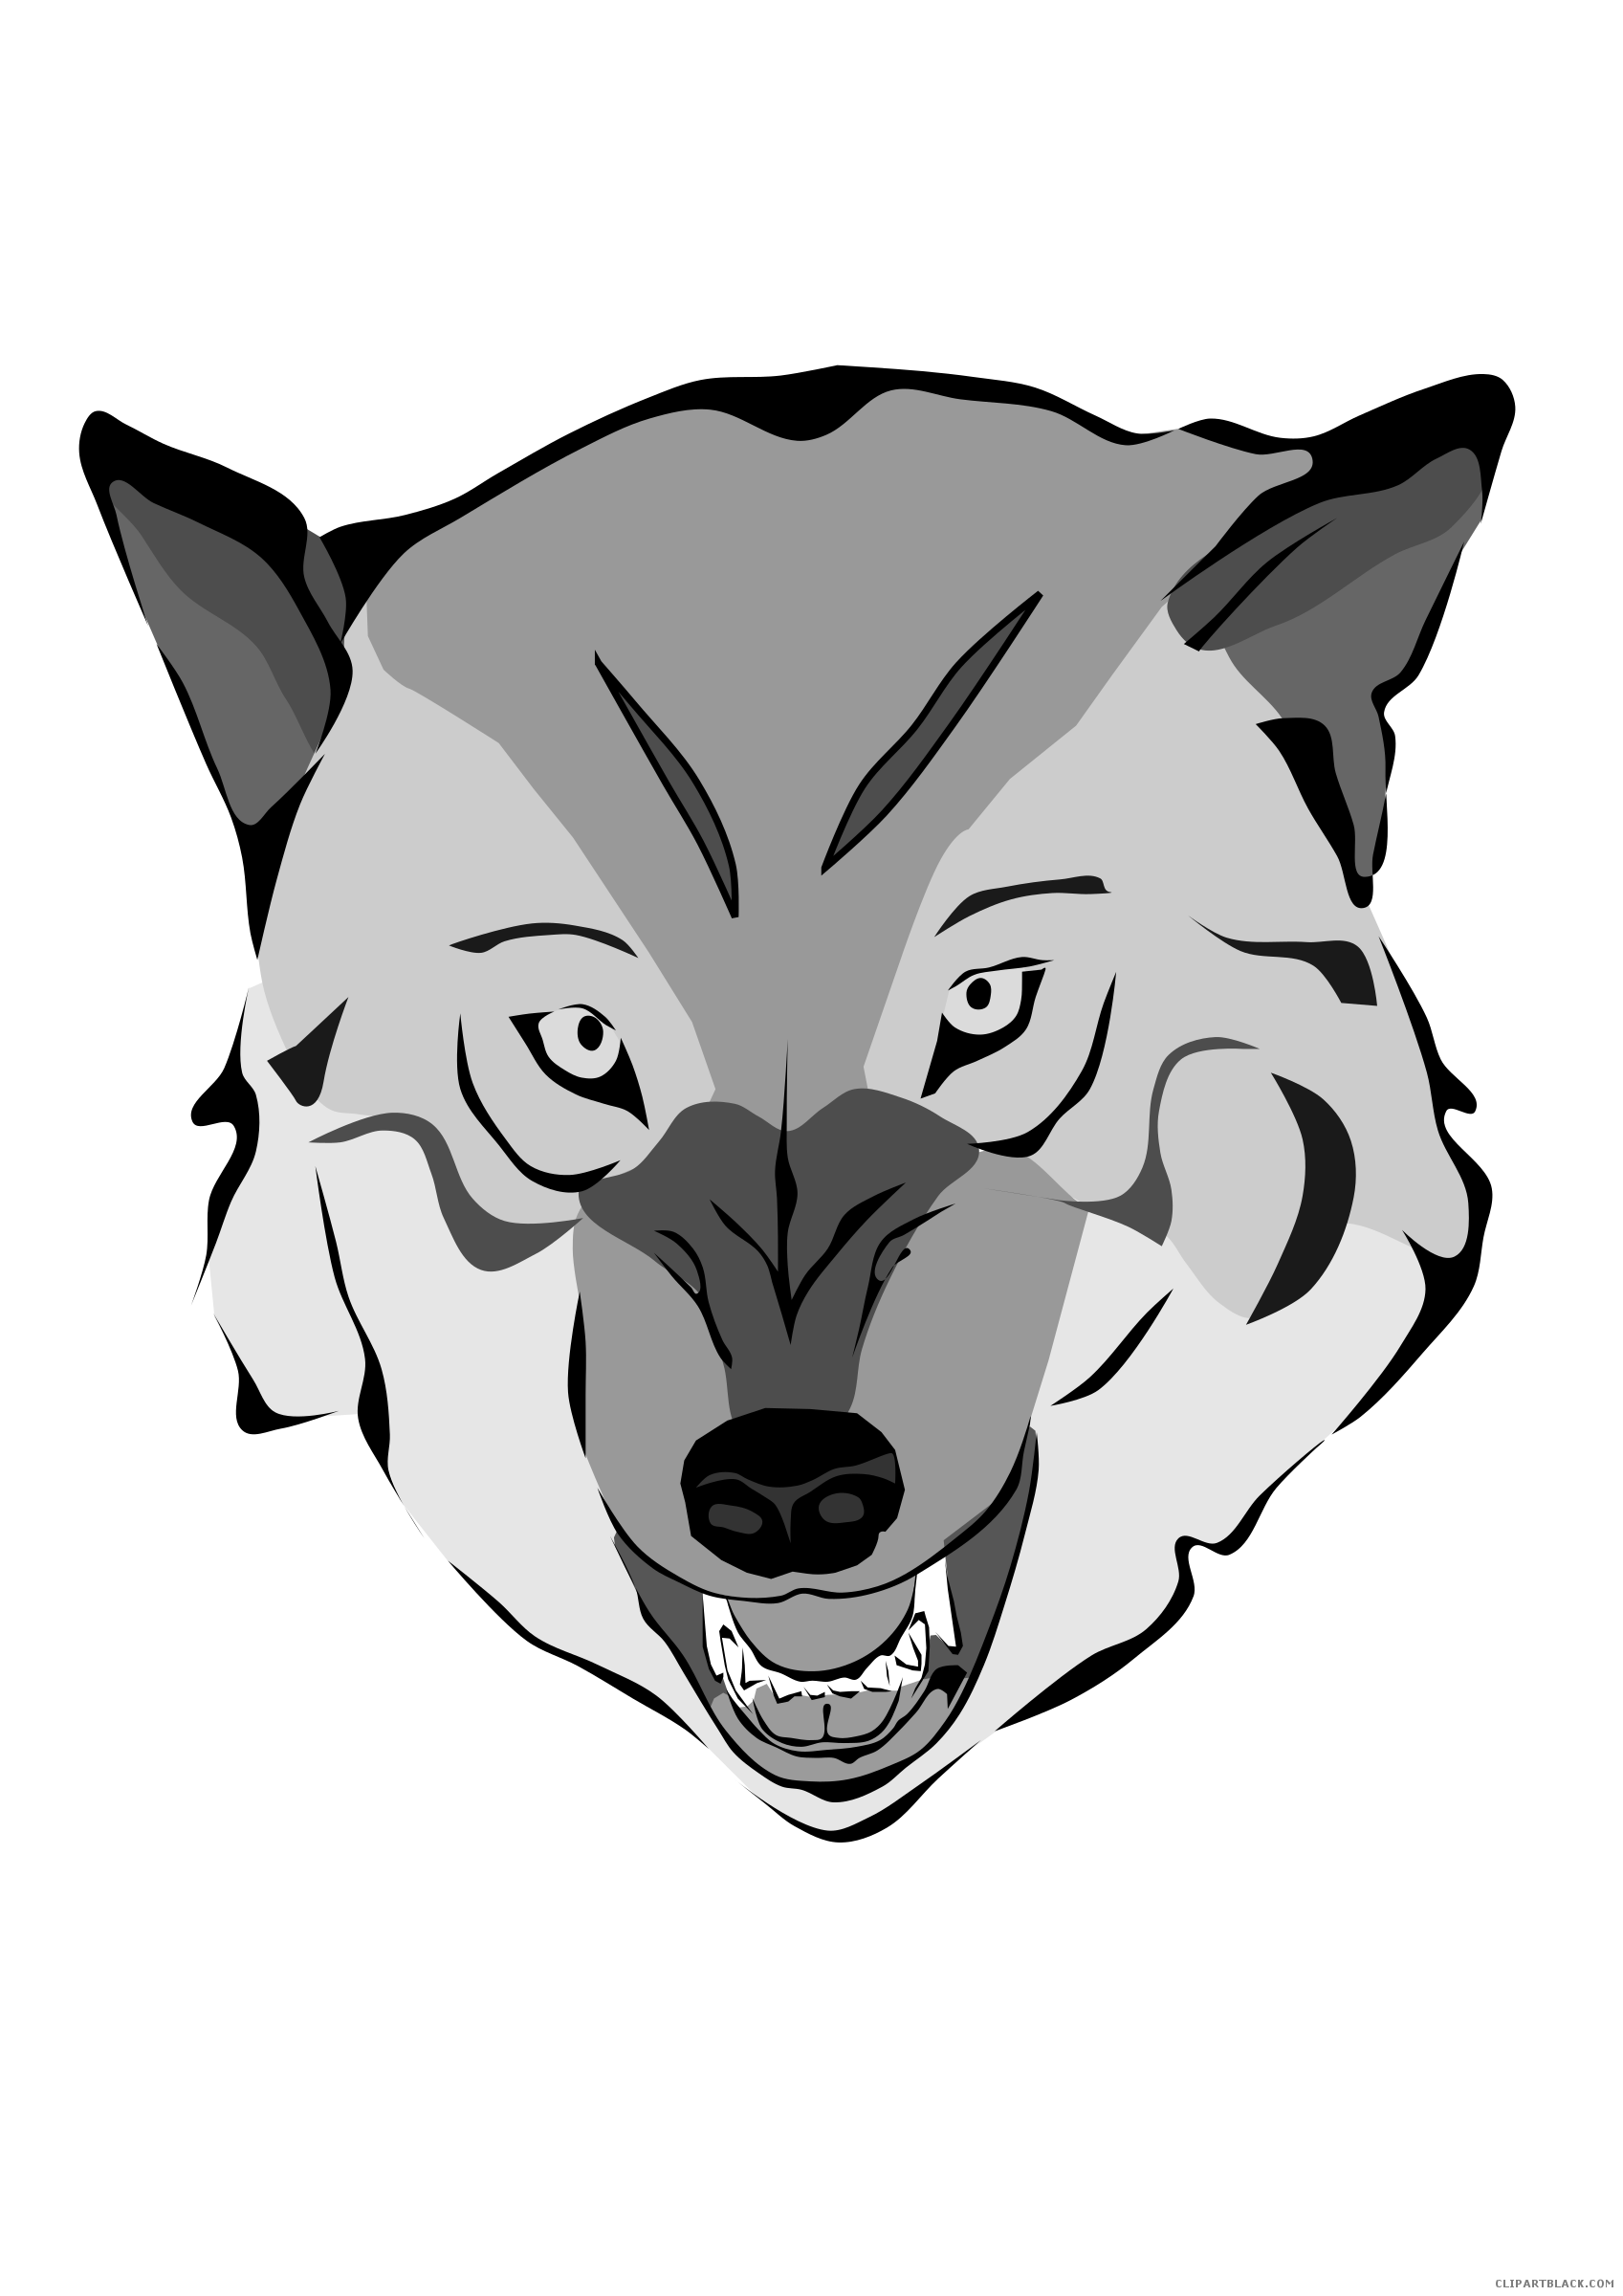 Face illustration of vectors. Wolf clipart vector